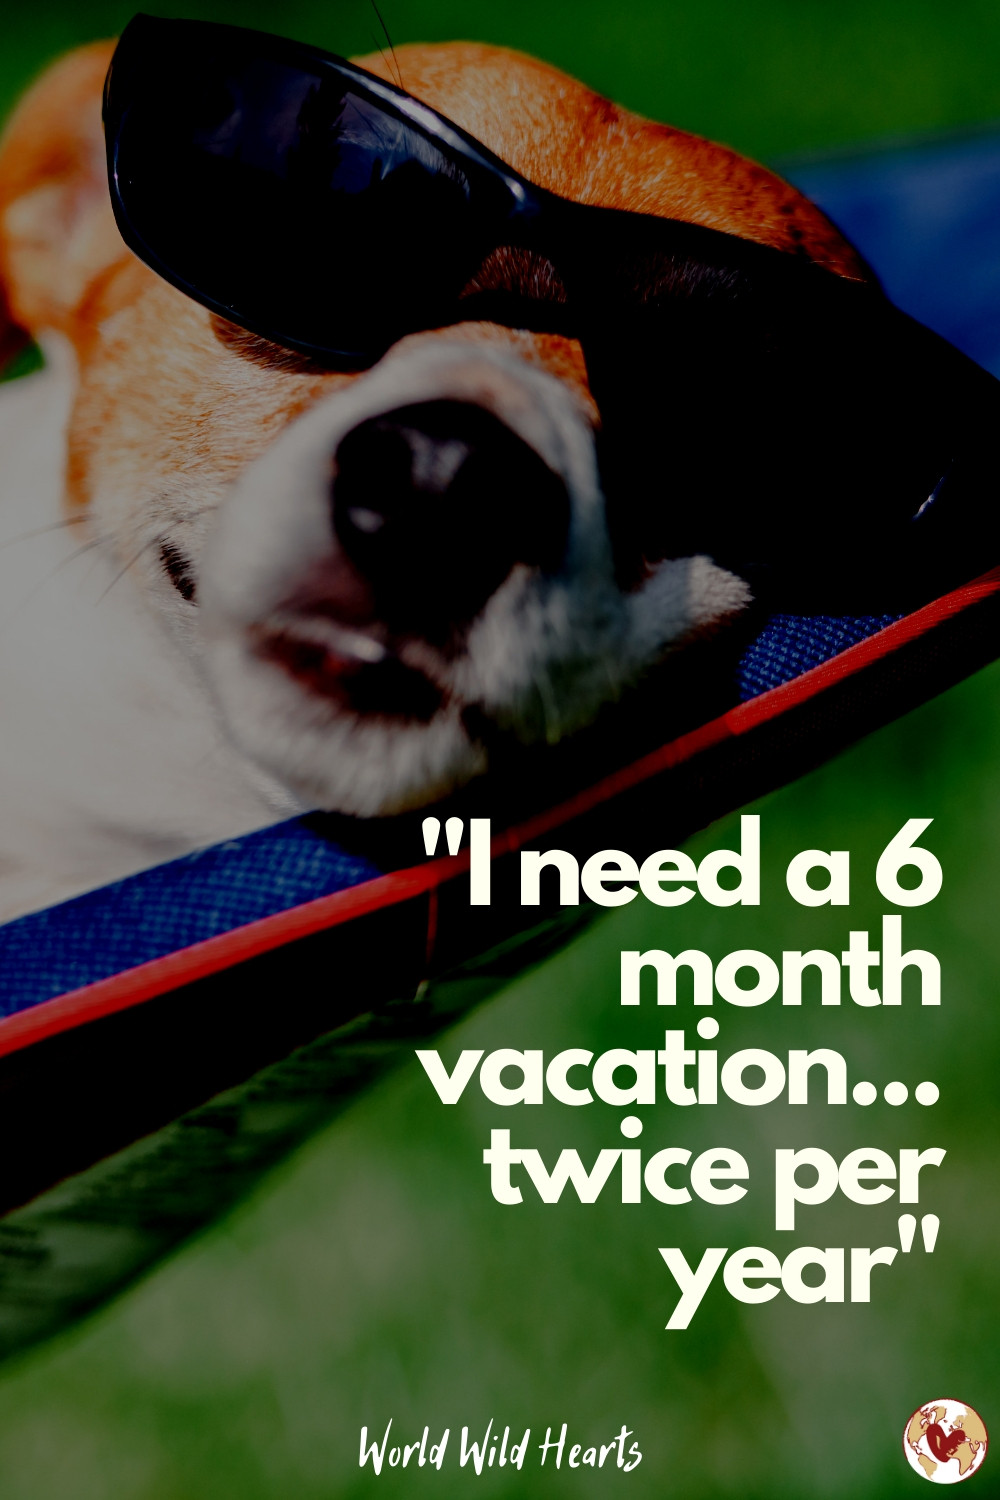 Vacation image to motivate you